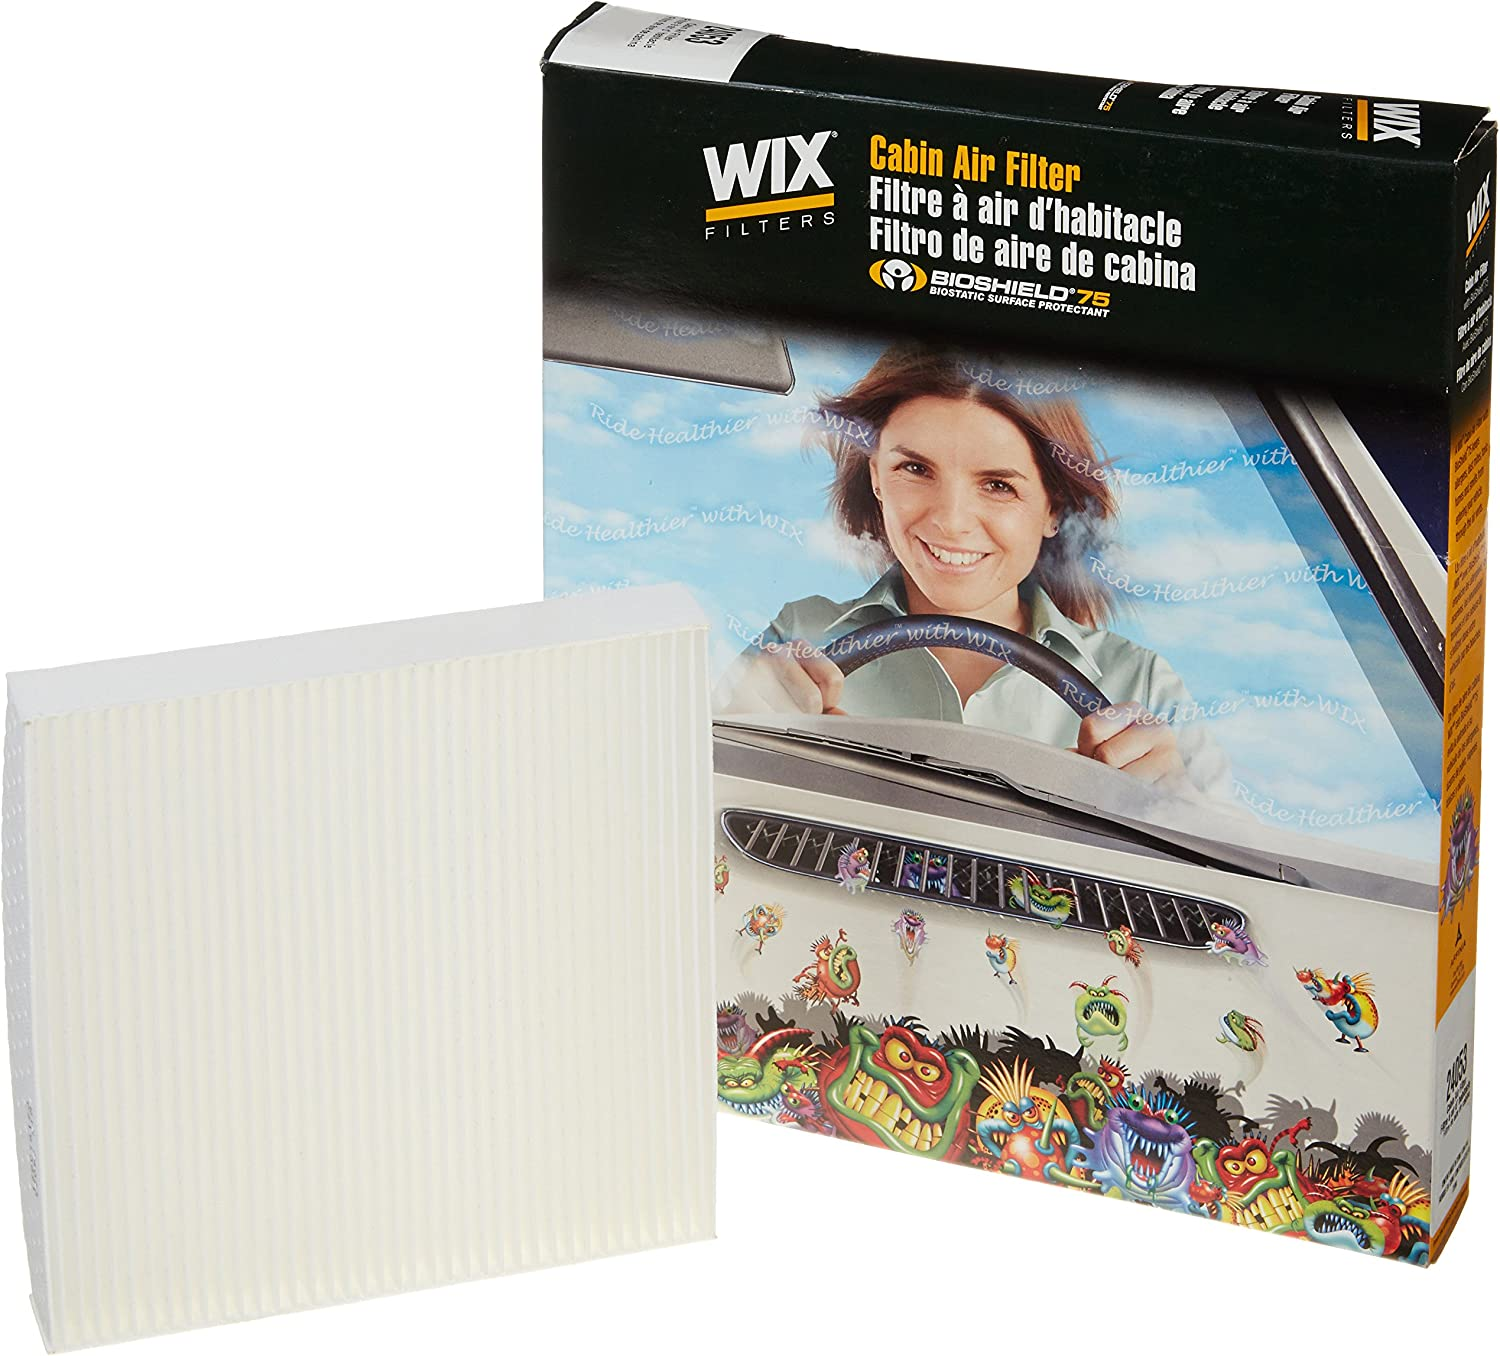 Wix 24053 Cabin Air Filter